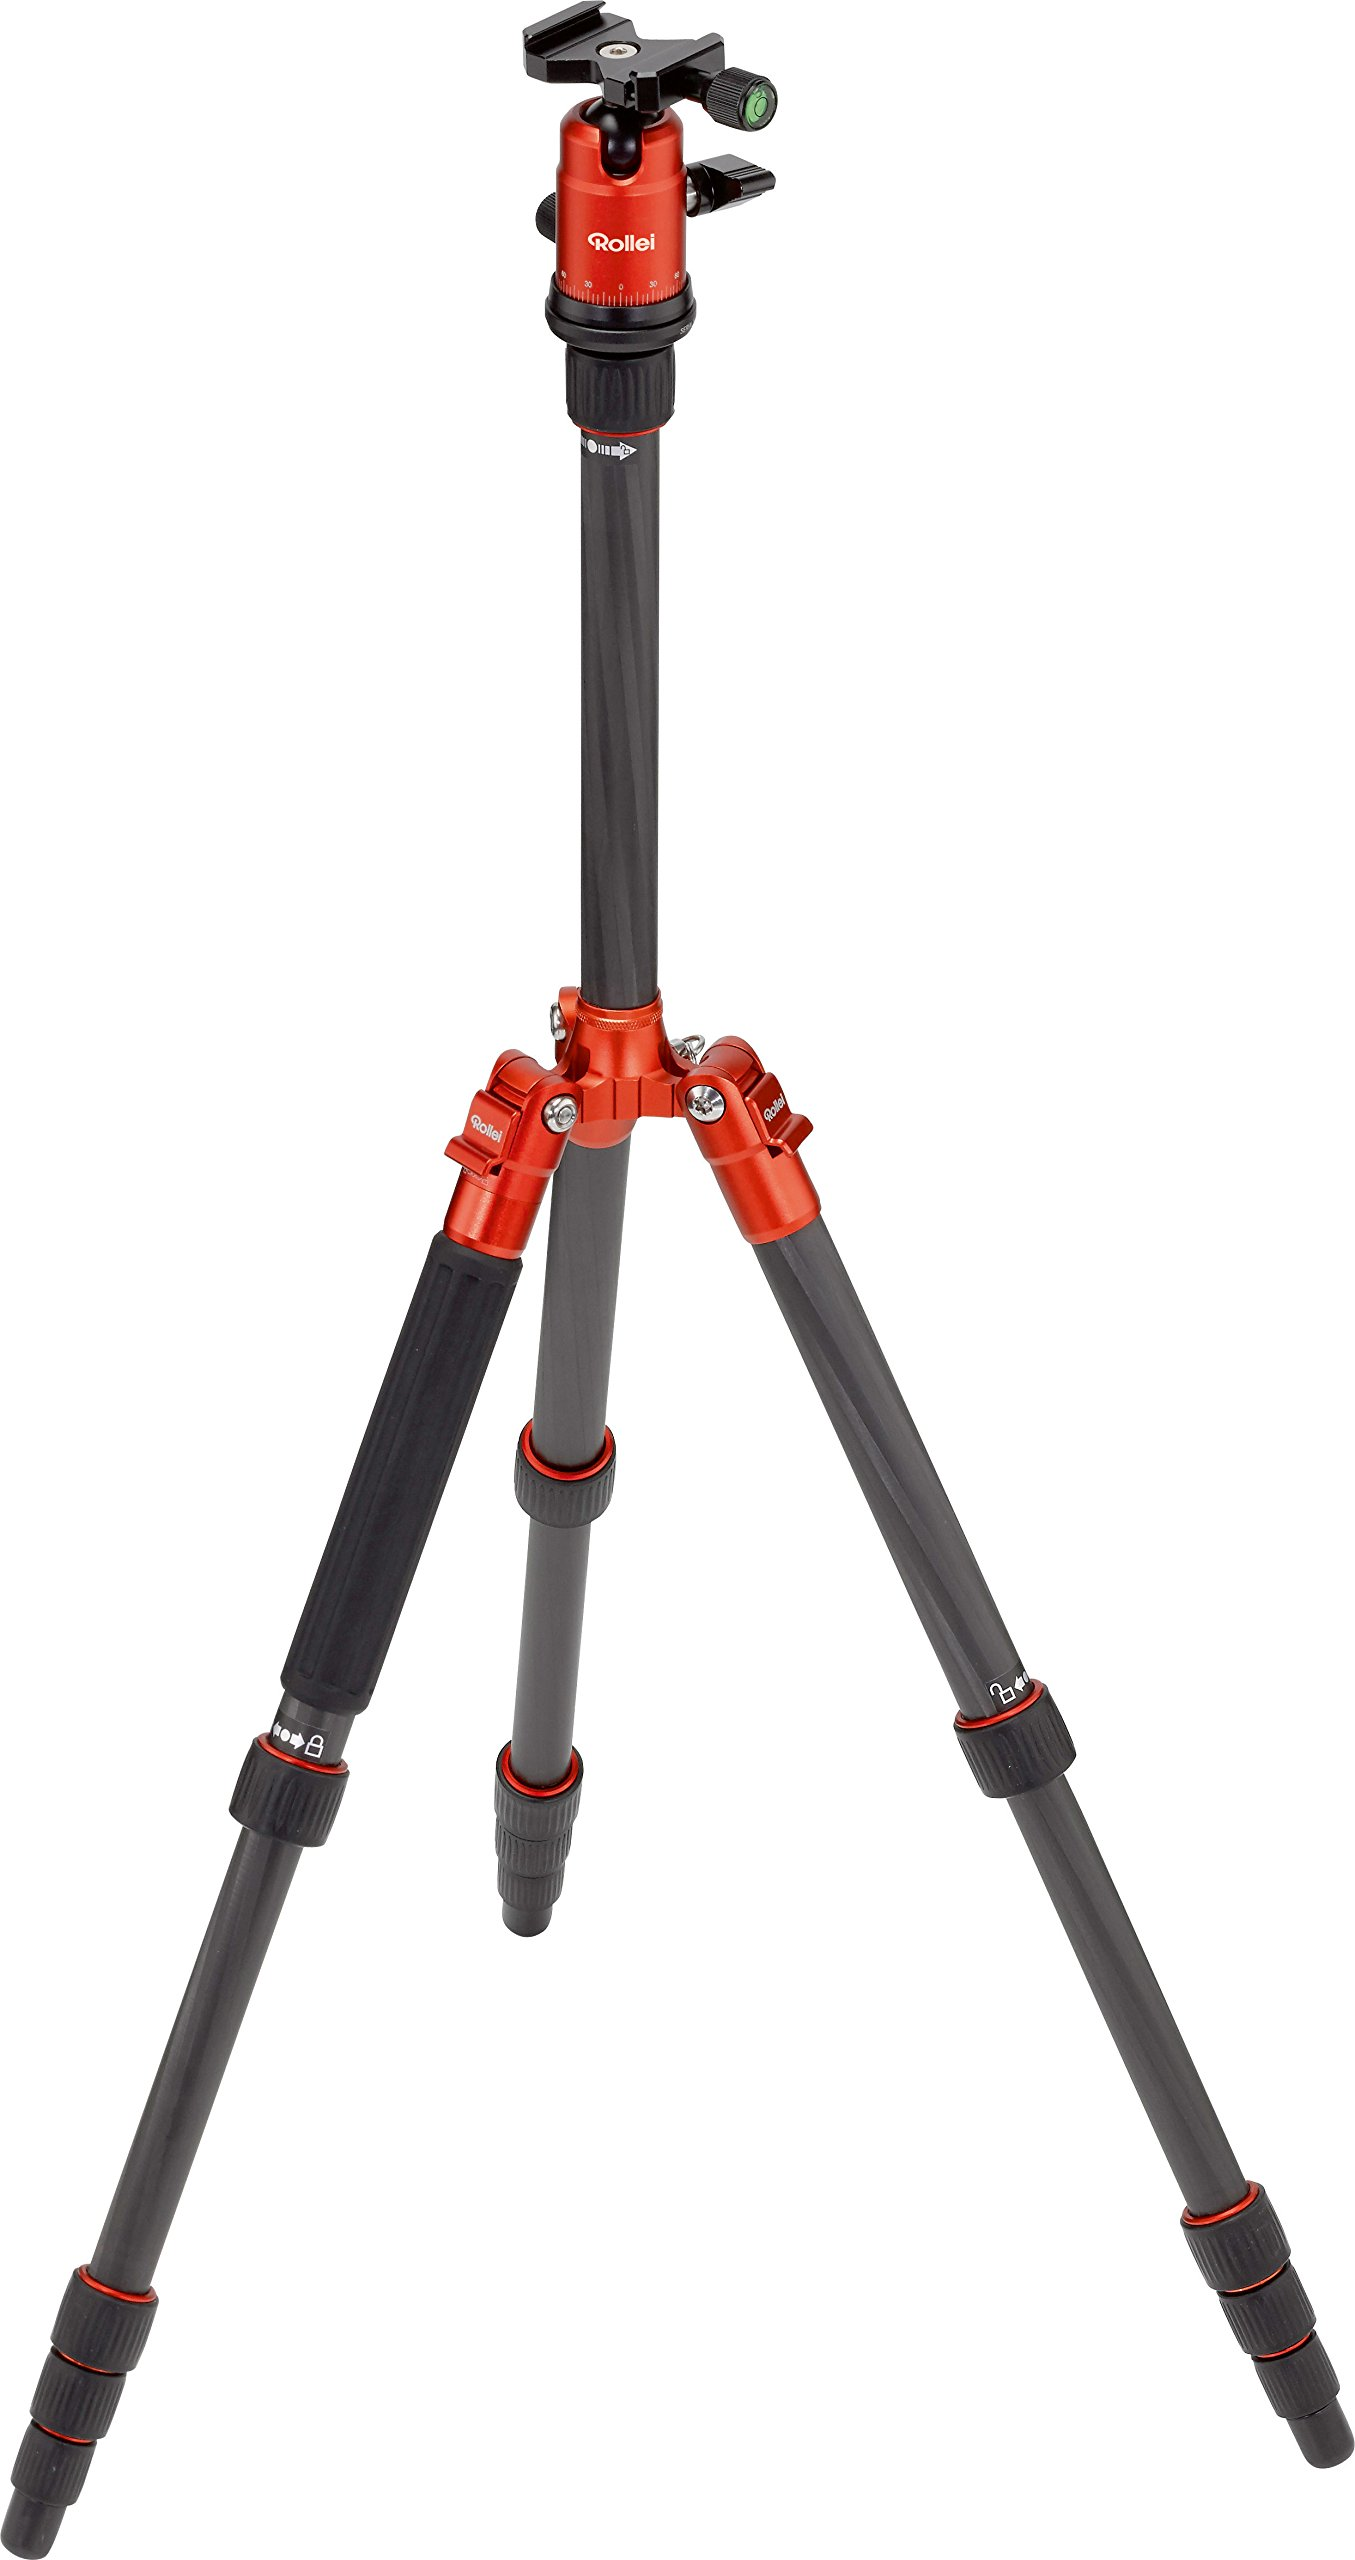 Rollei Compact Traveler No. 1 Carbon - Ultra-Lightweight Travel Tripod (2,16 lb incl. Ball Head) - Folded Length: 12,99'' - Arca Swiss compatible - Monopod Function - Carbon - Orange